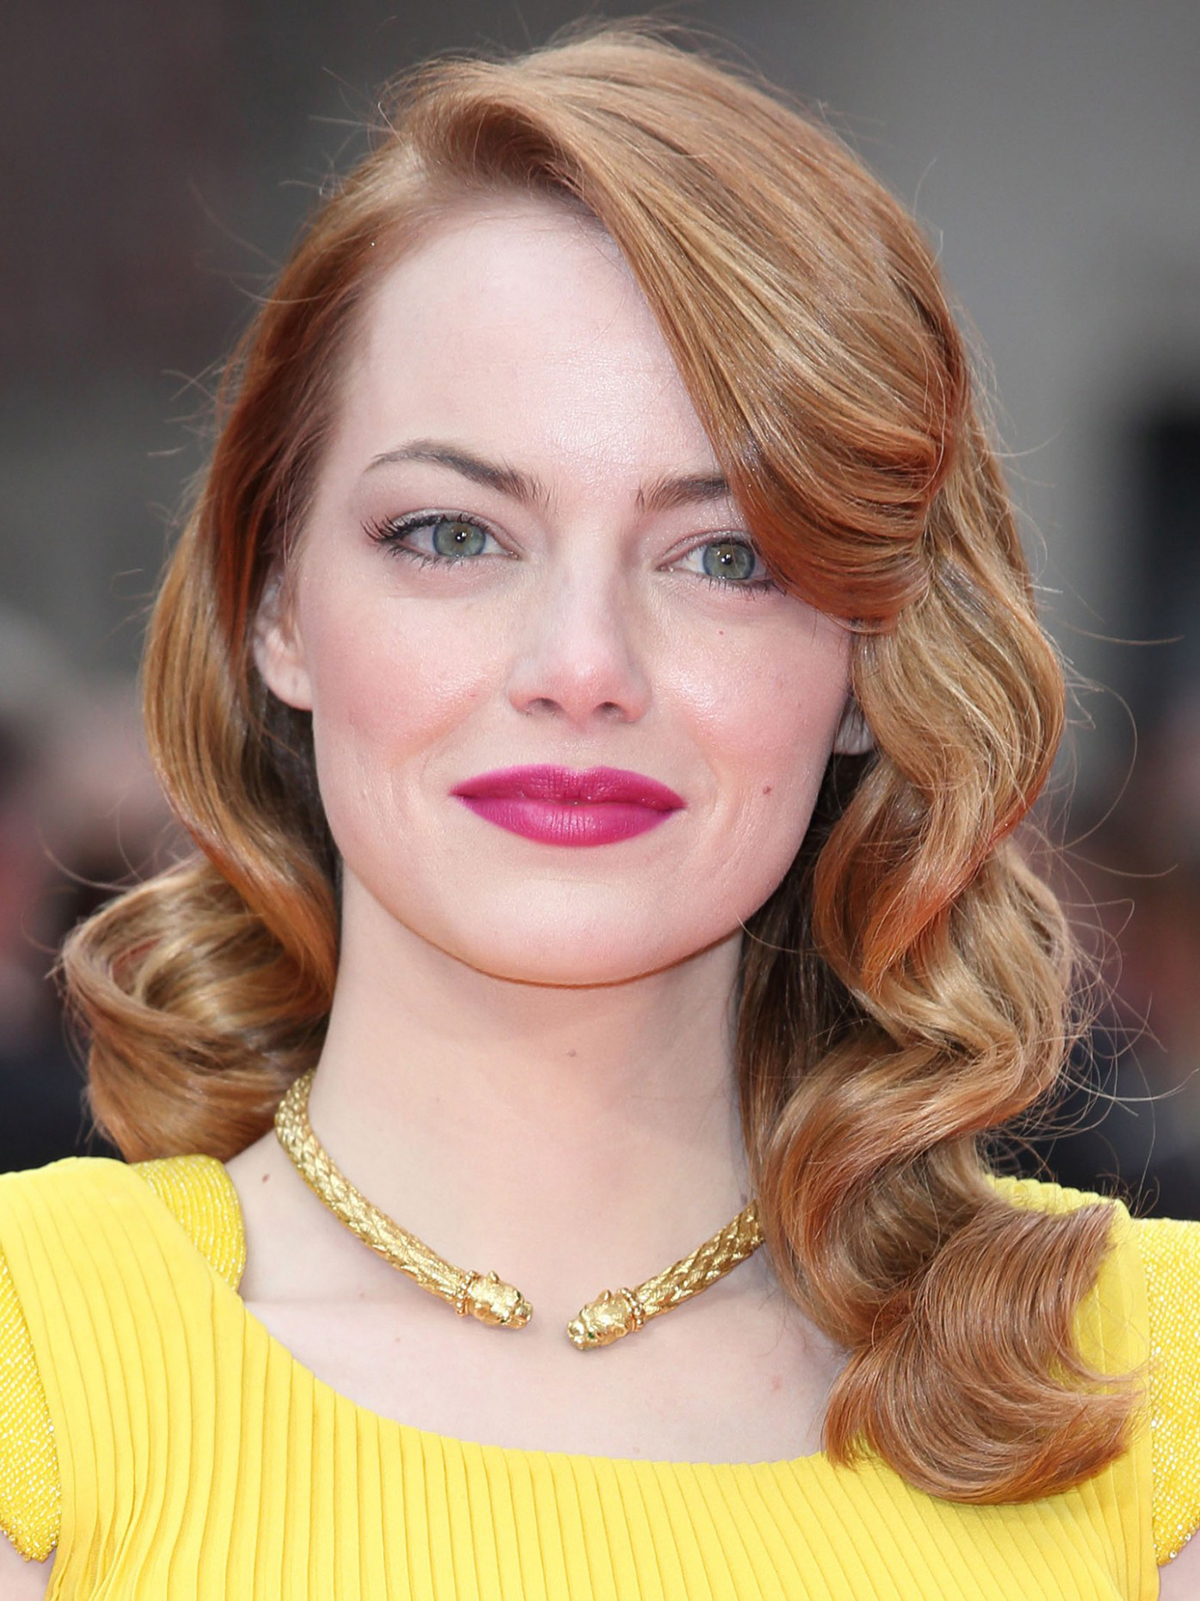 1516590632-emma-stone-hair-and-makeup-pictures-of-emma-stone-s-hairstyles-emma-stone-hairstyles. Ojos color verde